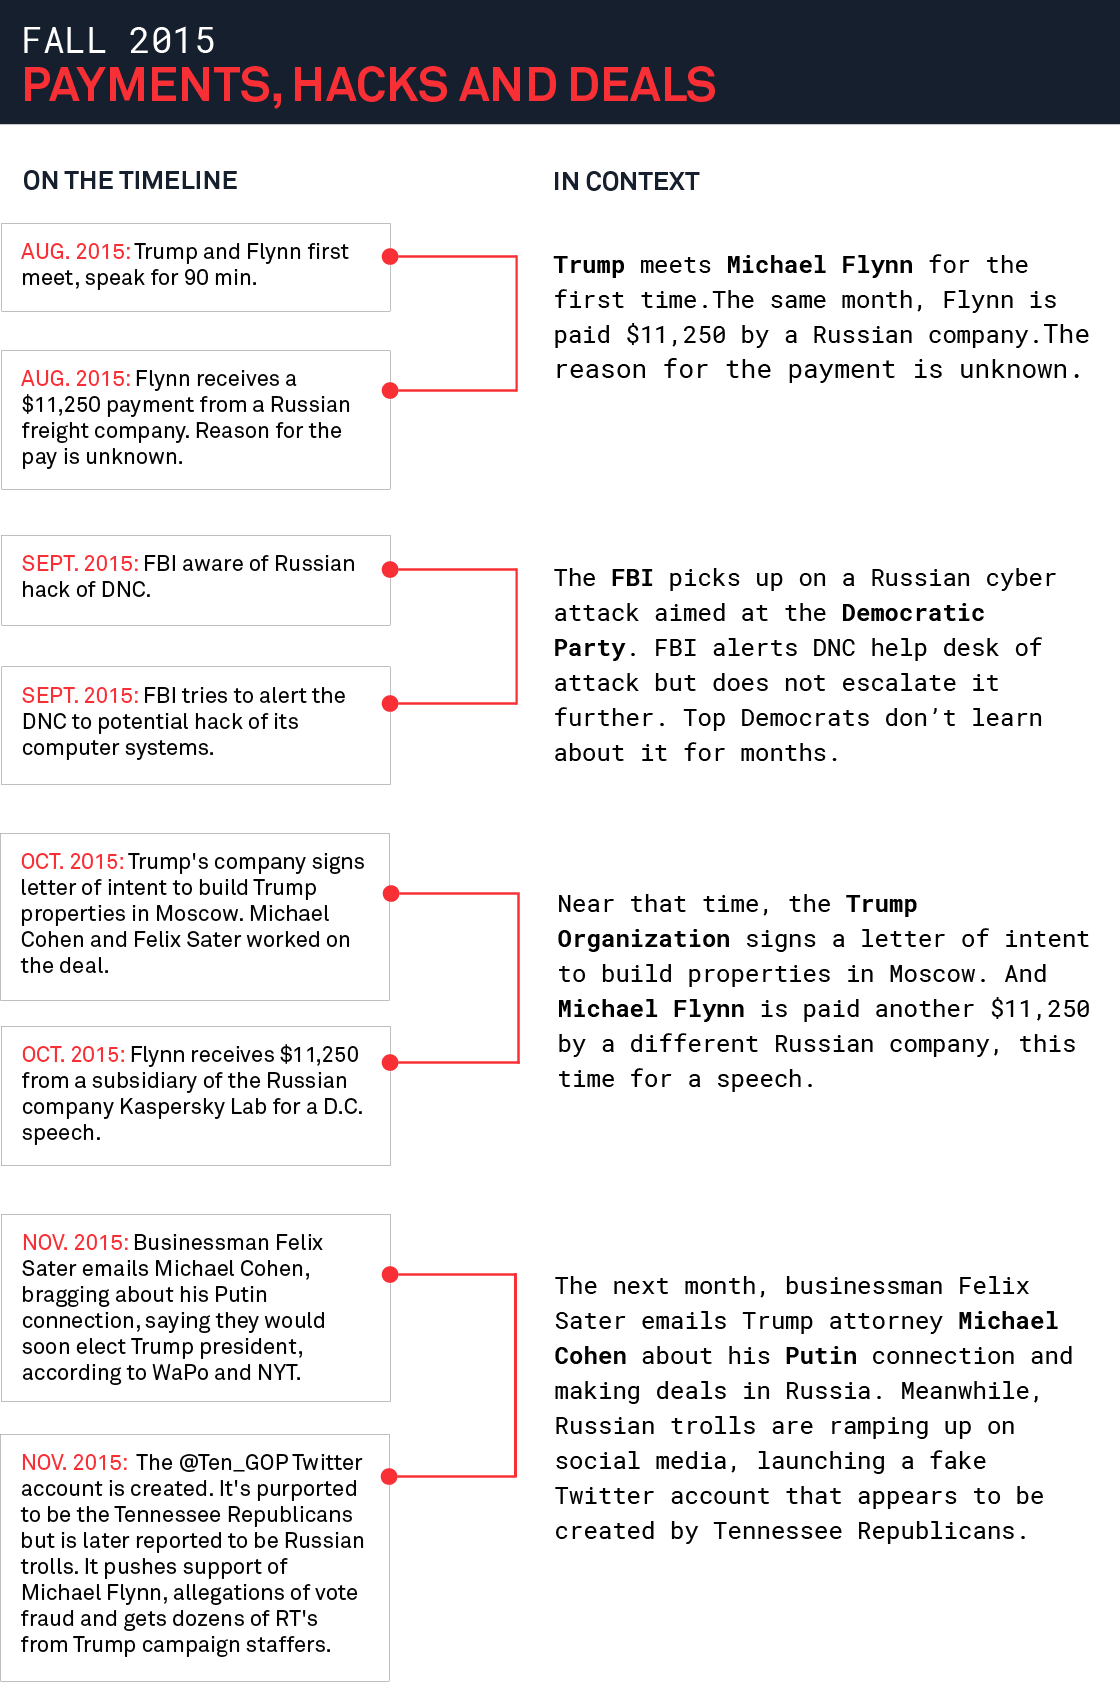 The giant timeline of everything Russia, Trump and the investigations